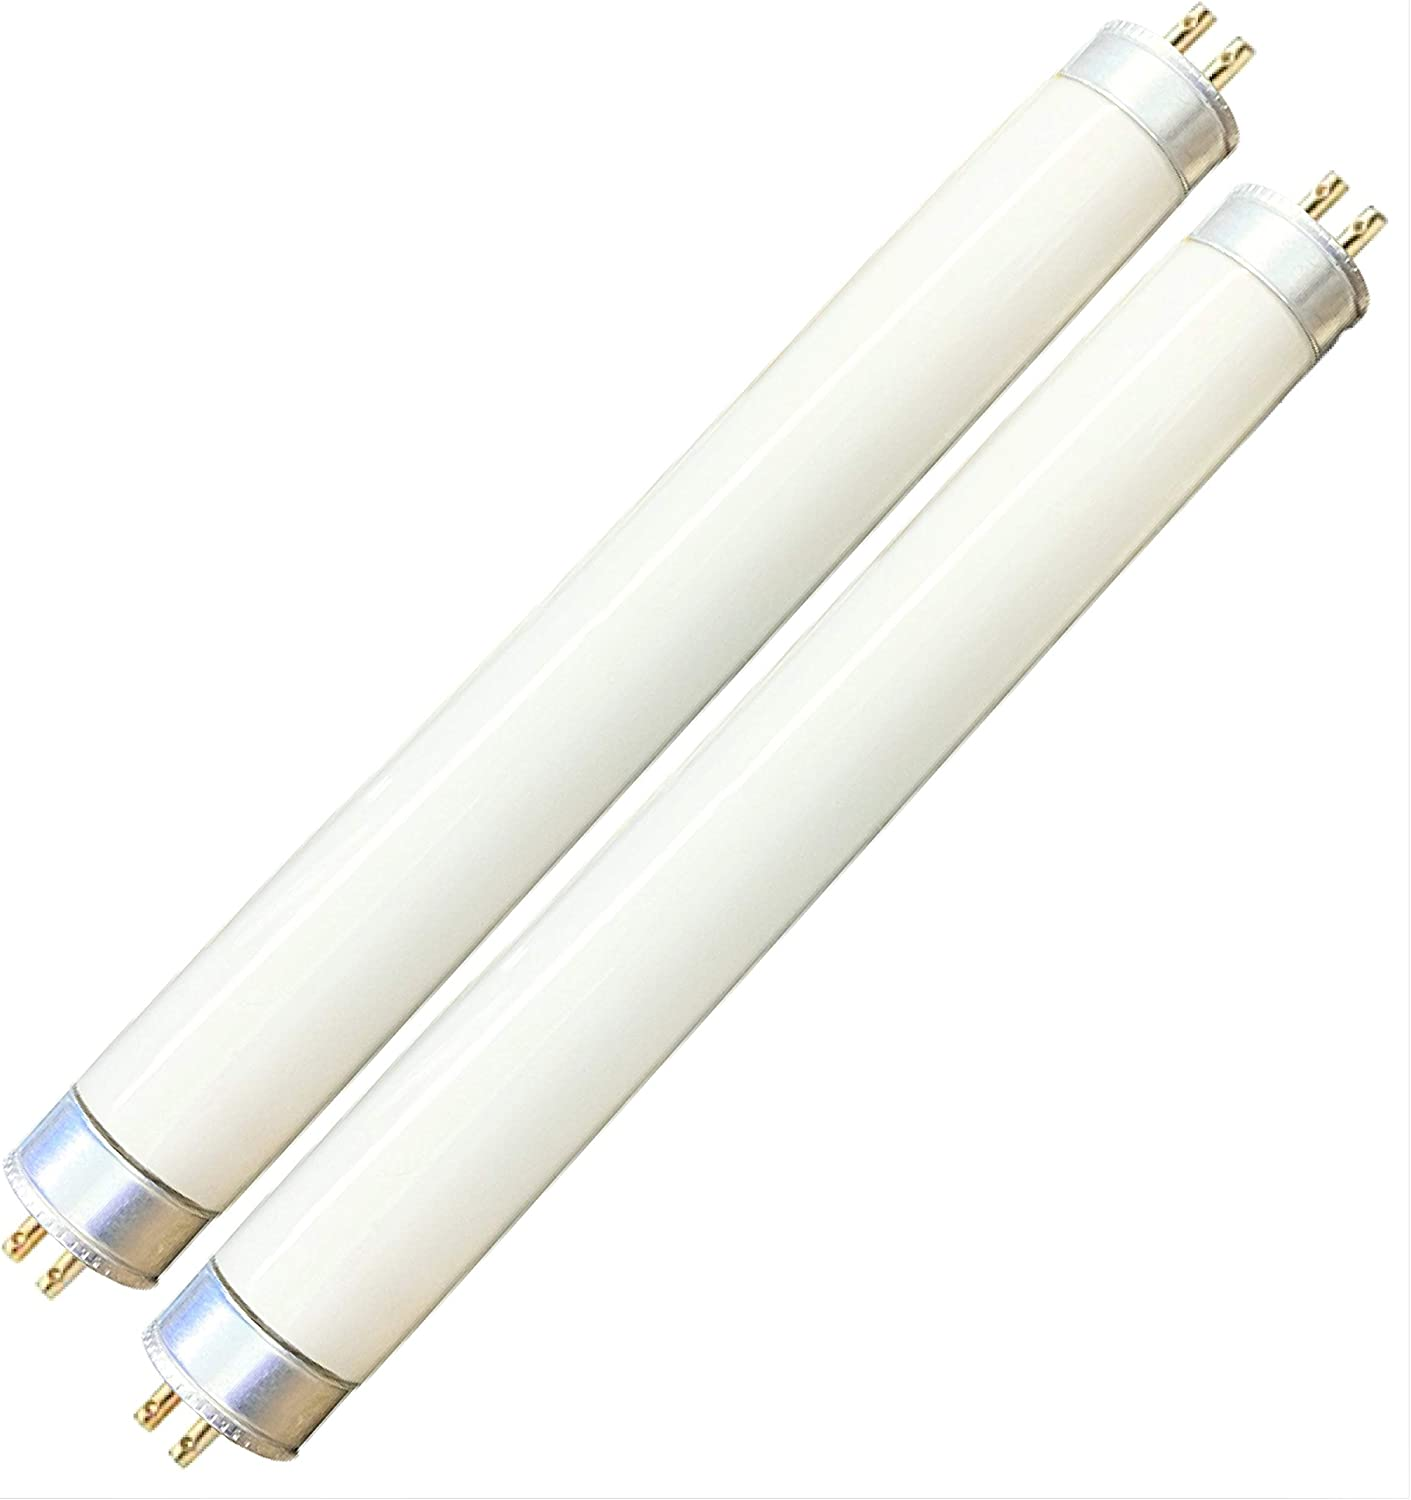 Replacement for Atlanta Mall Sylvania F6t5 Free shipping anywhere in the nation 350 Bl Light Bulb Technical by WPA